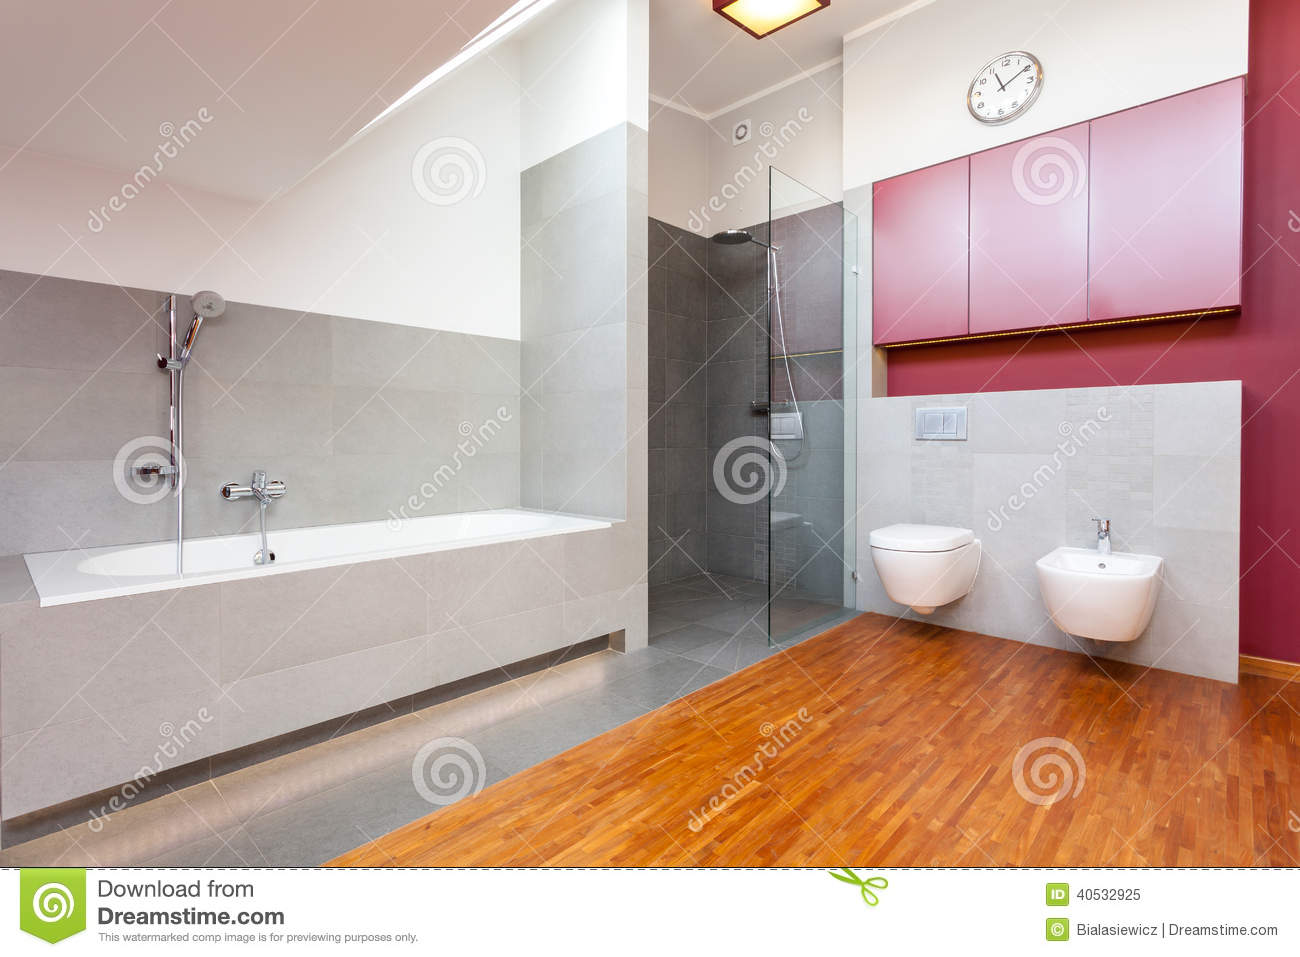 salle de bains moderne rouge et grise image stock image. Black Bedroom Furniture Sets. Home Design Ideas